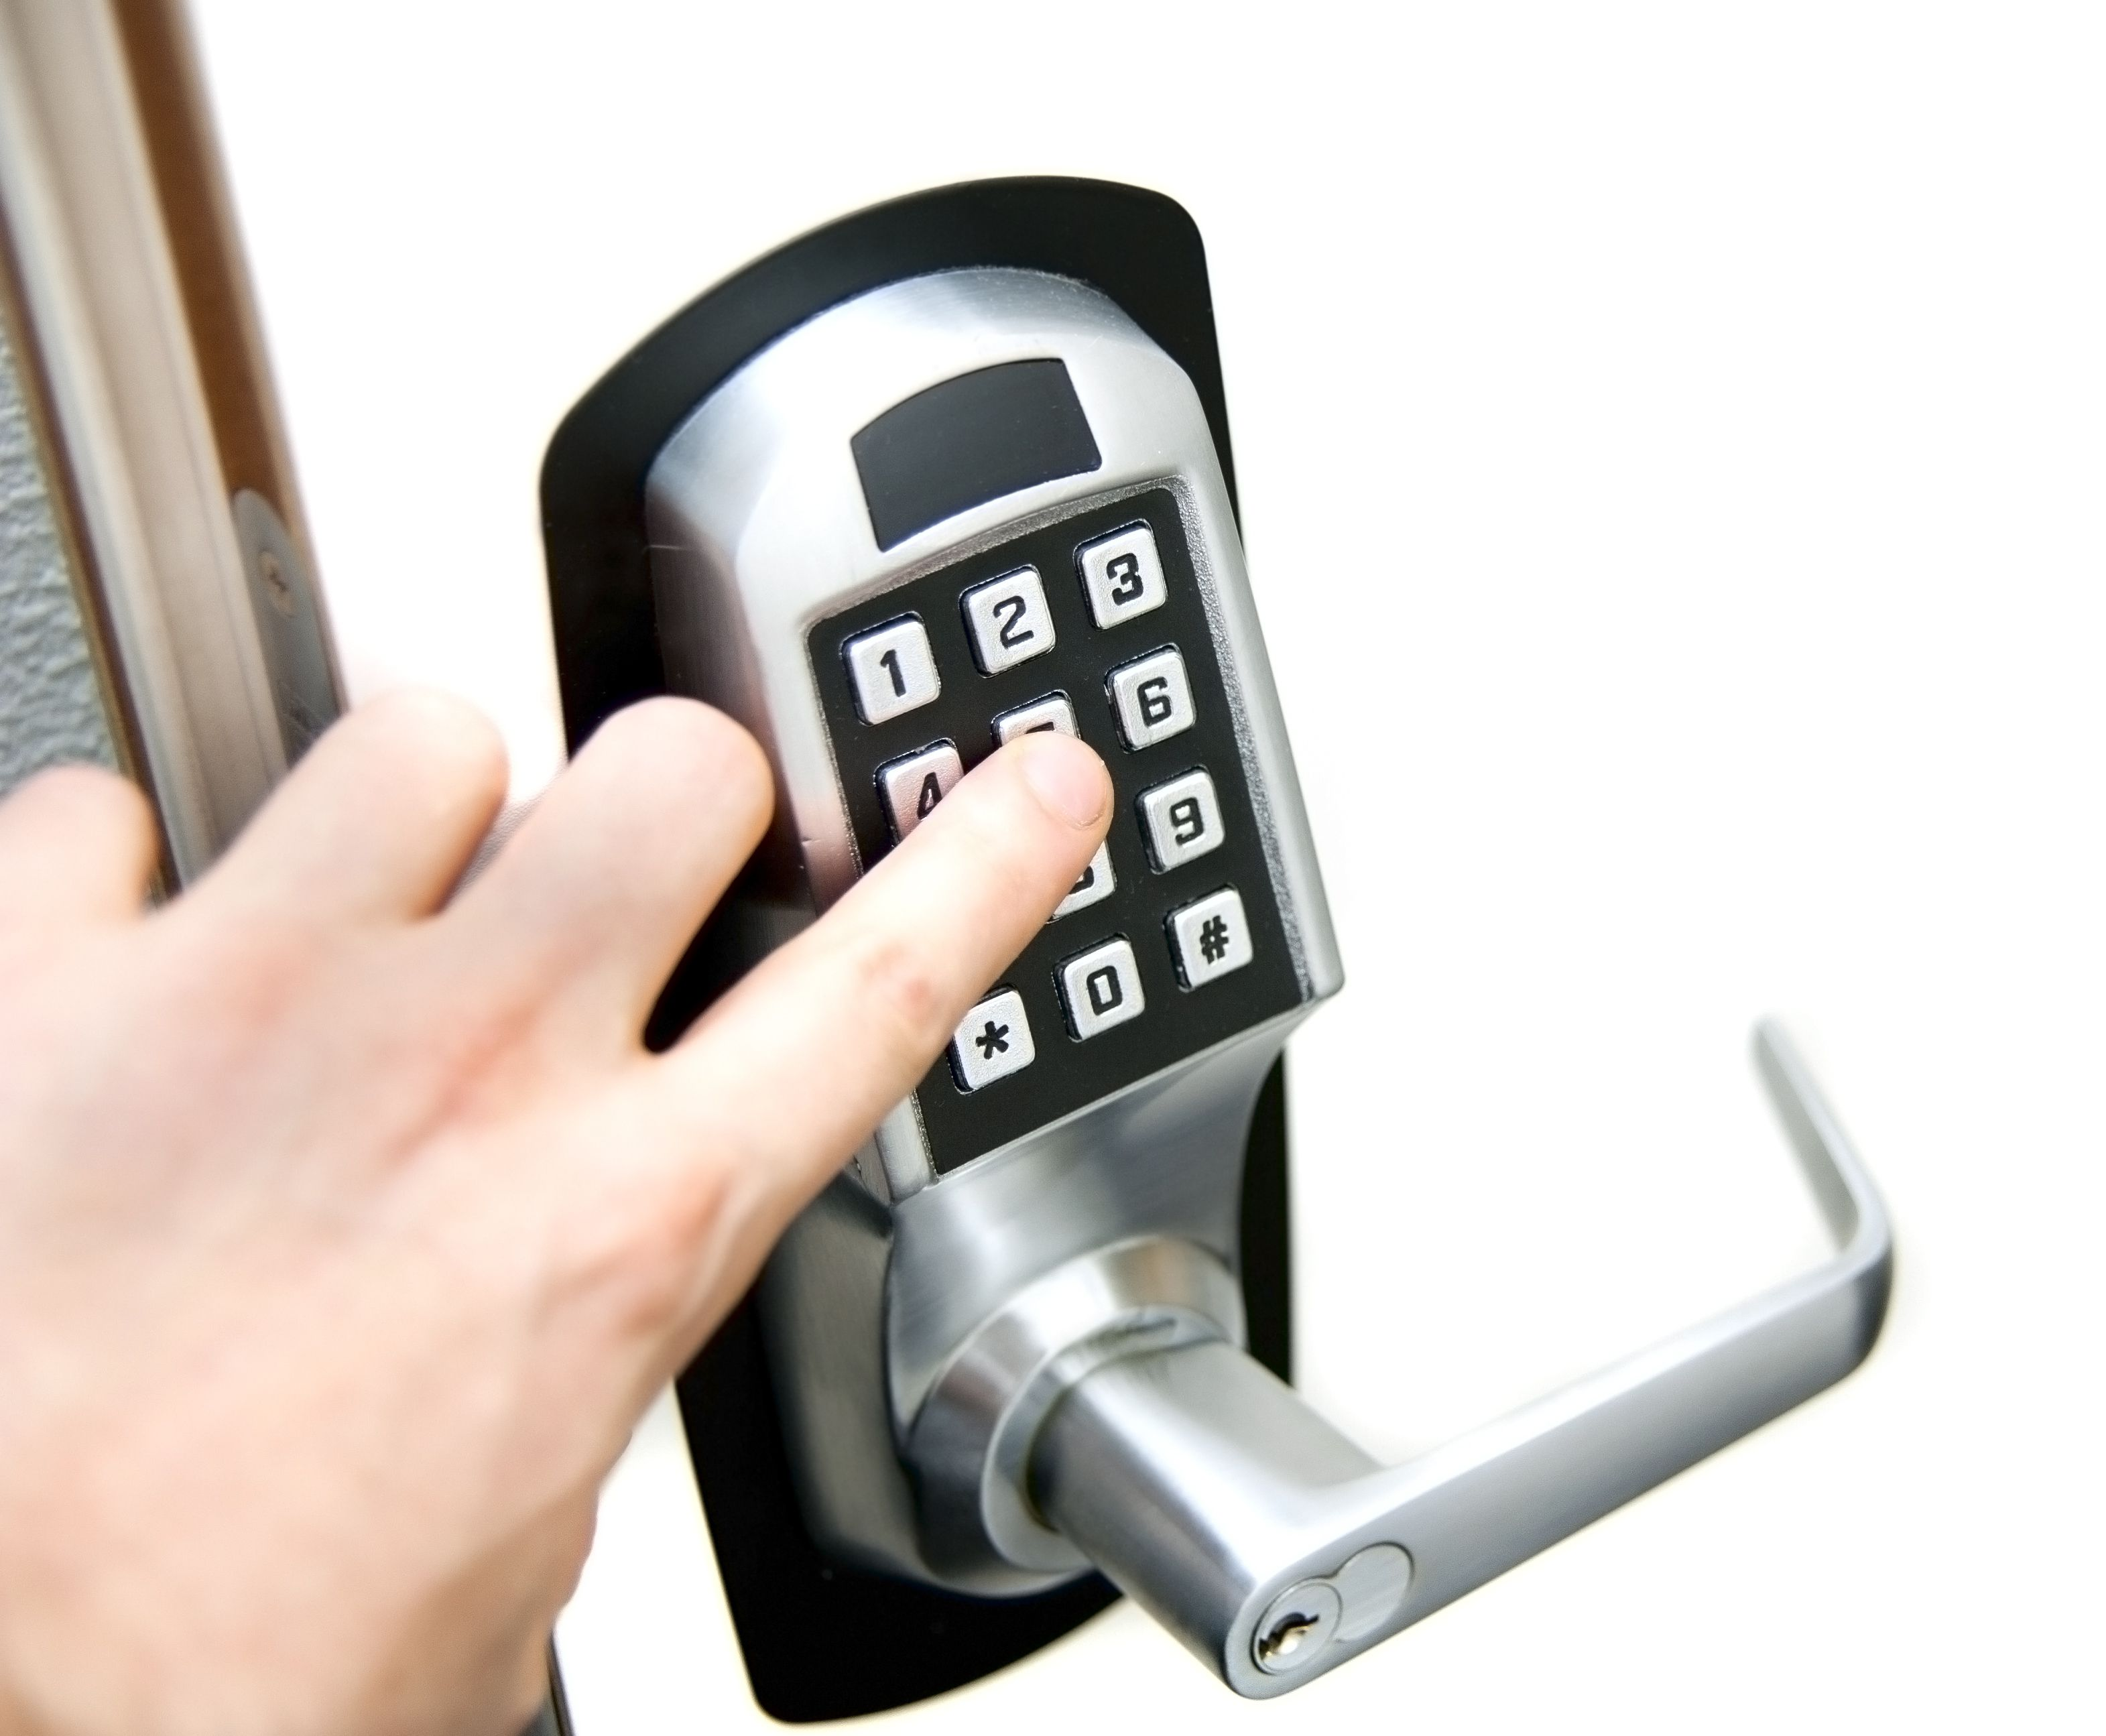 Top 5 Keyless Entry Systems for a House